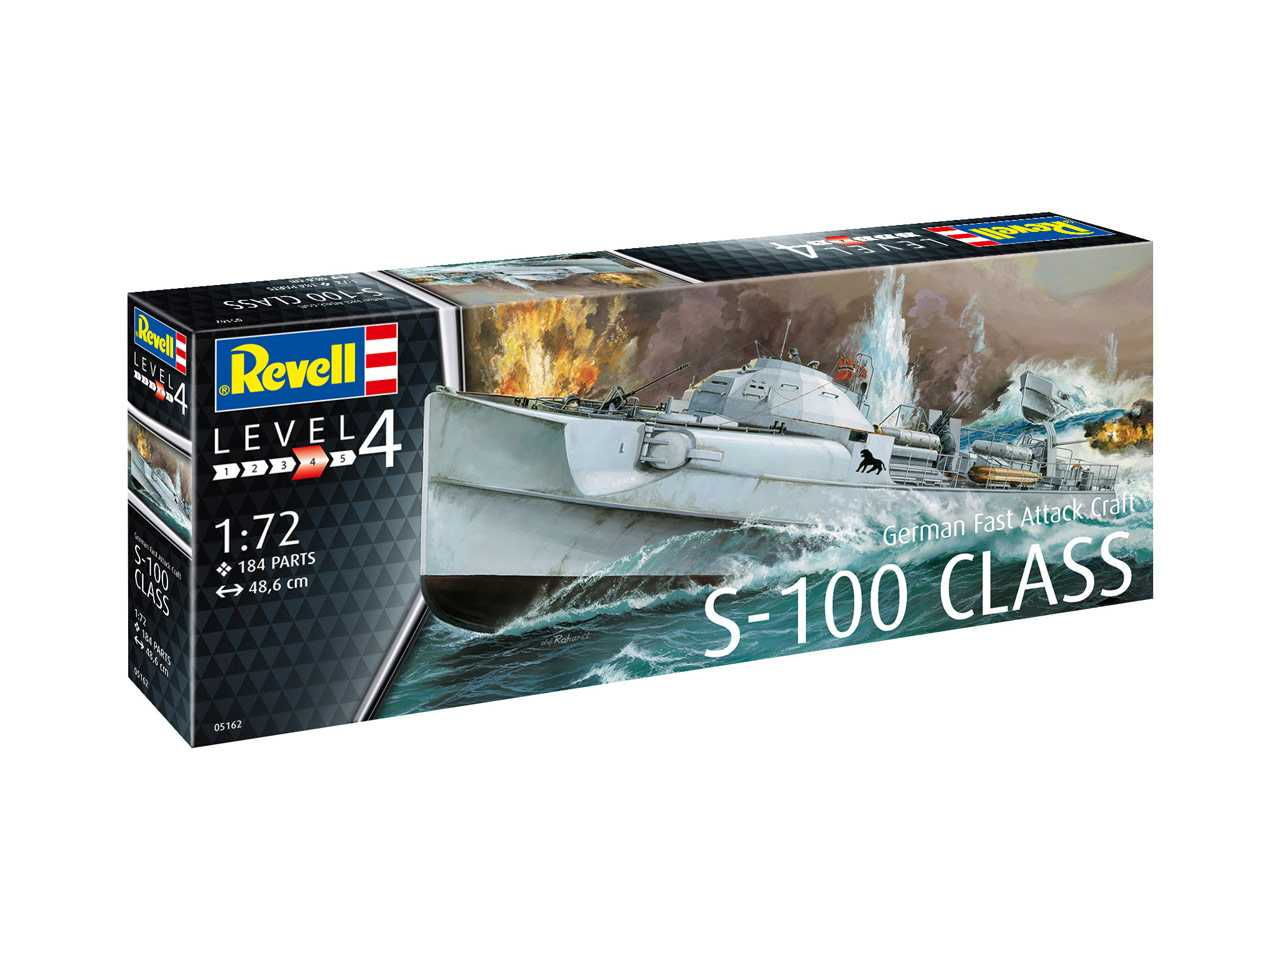 1:72 German Fast Attack Craft S-100 Class